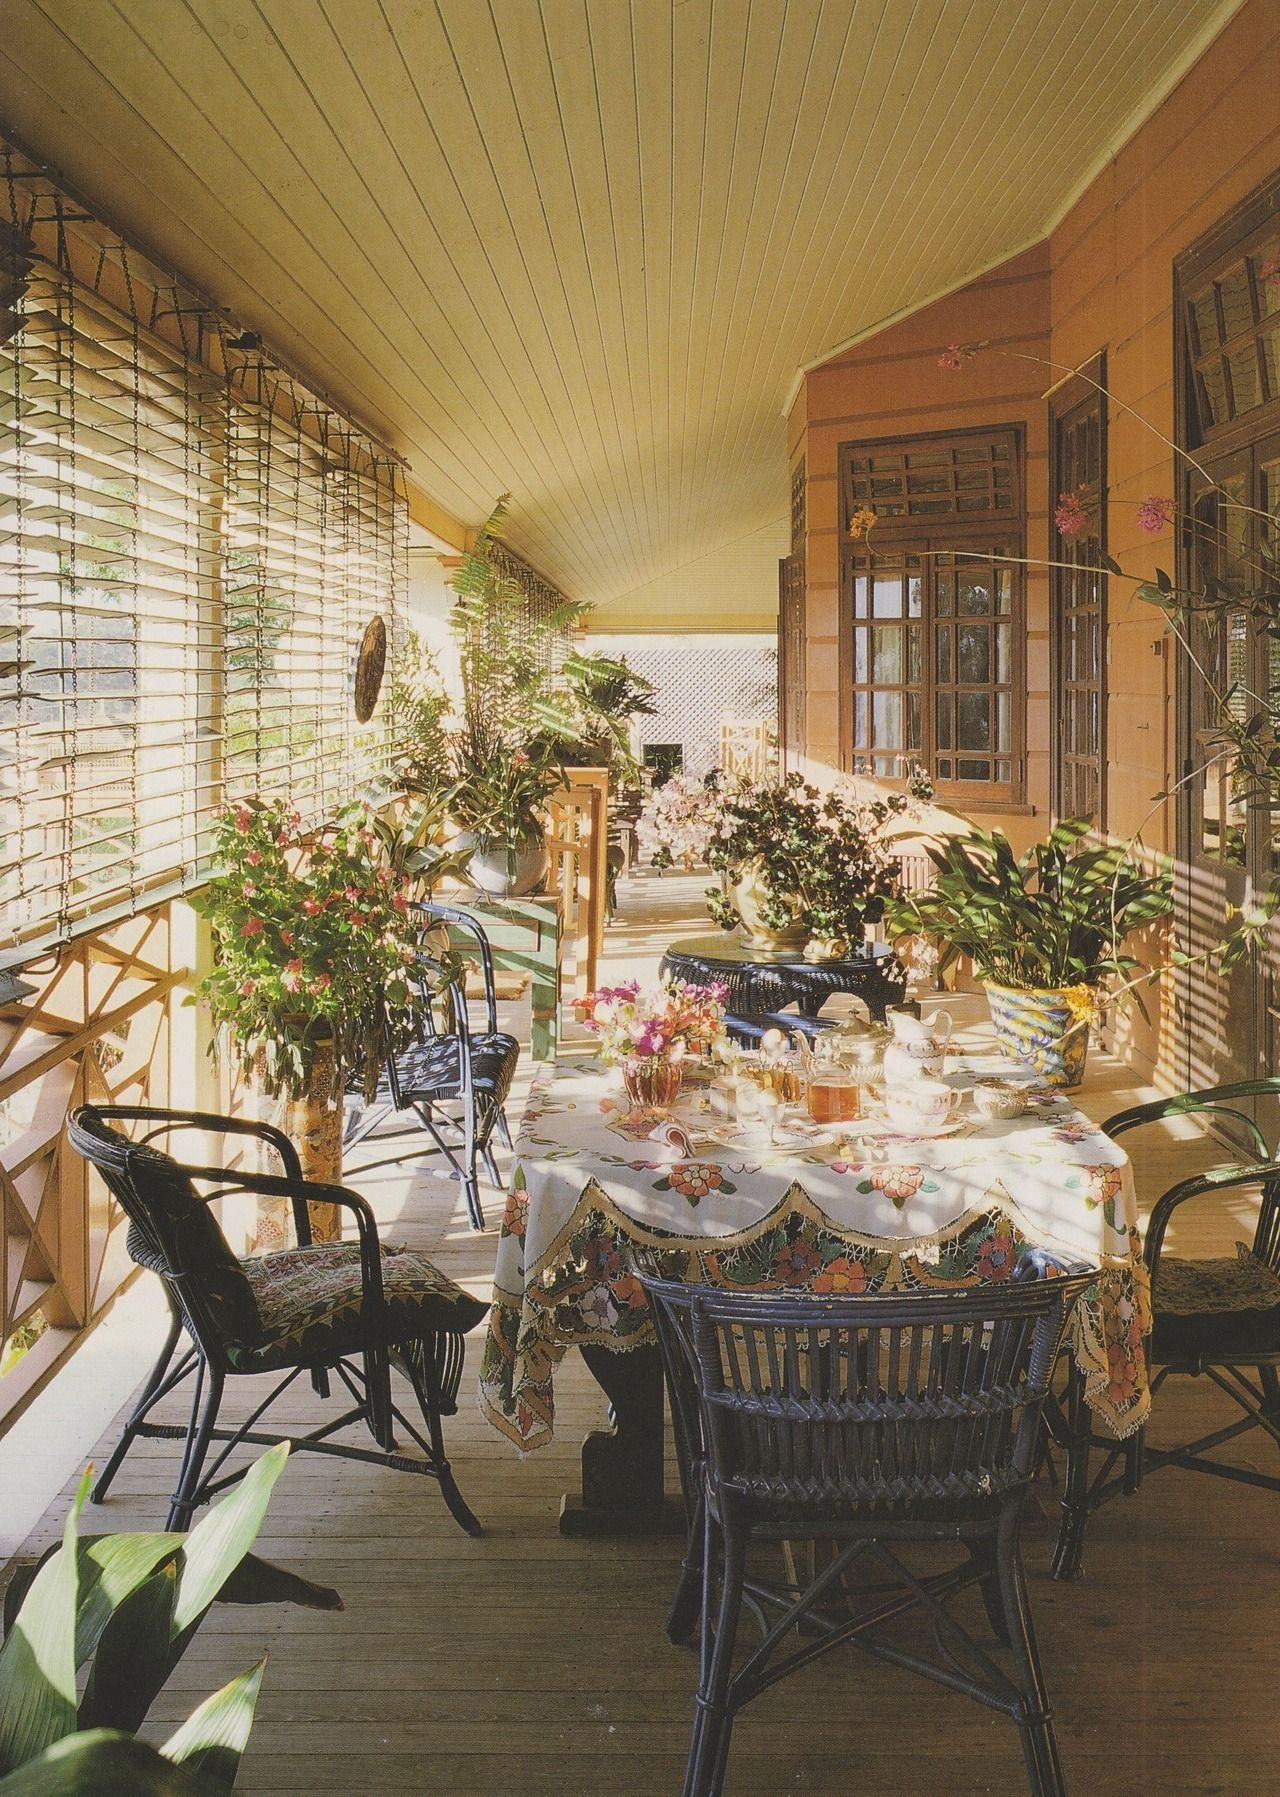 Amazing Classical Terrace Design Ideas To Try This Spring 12